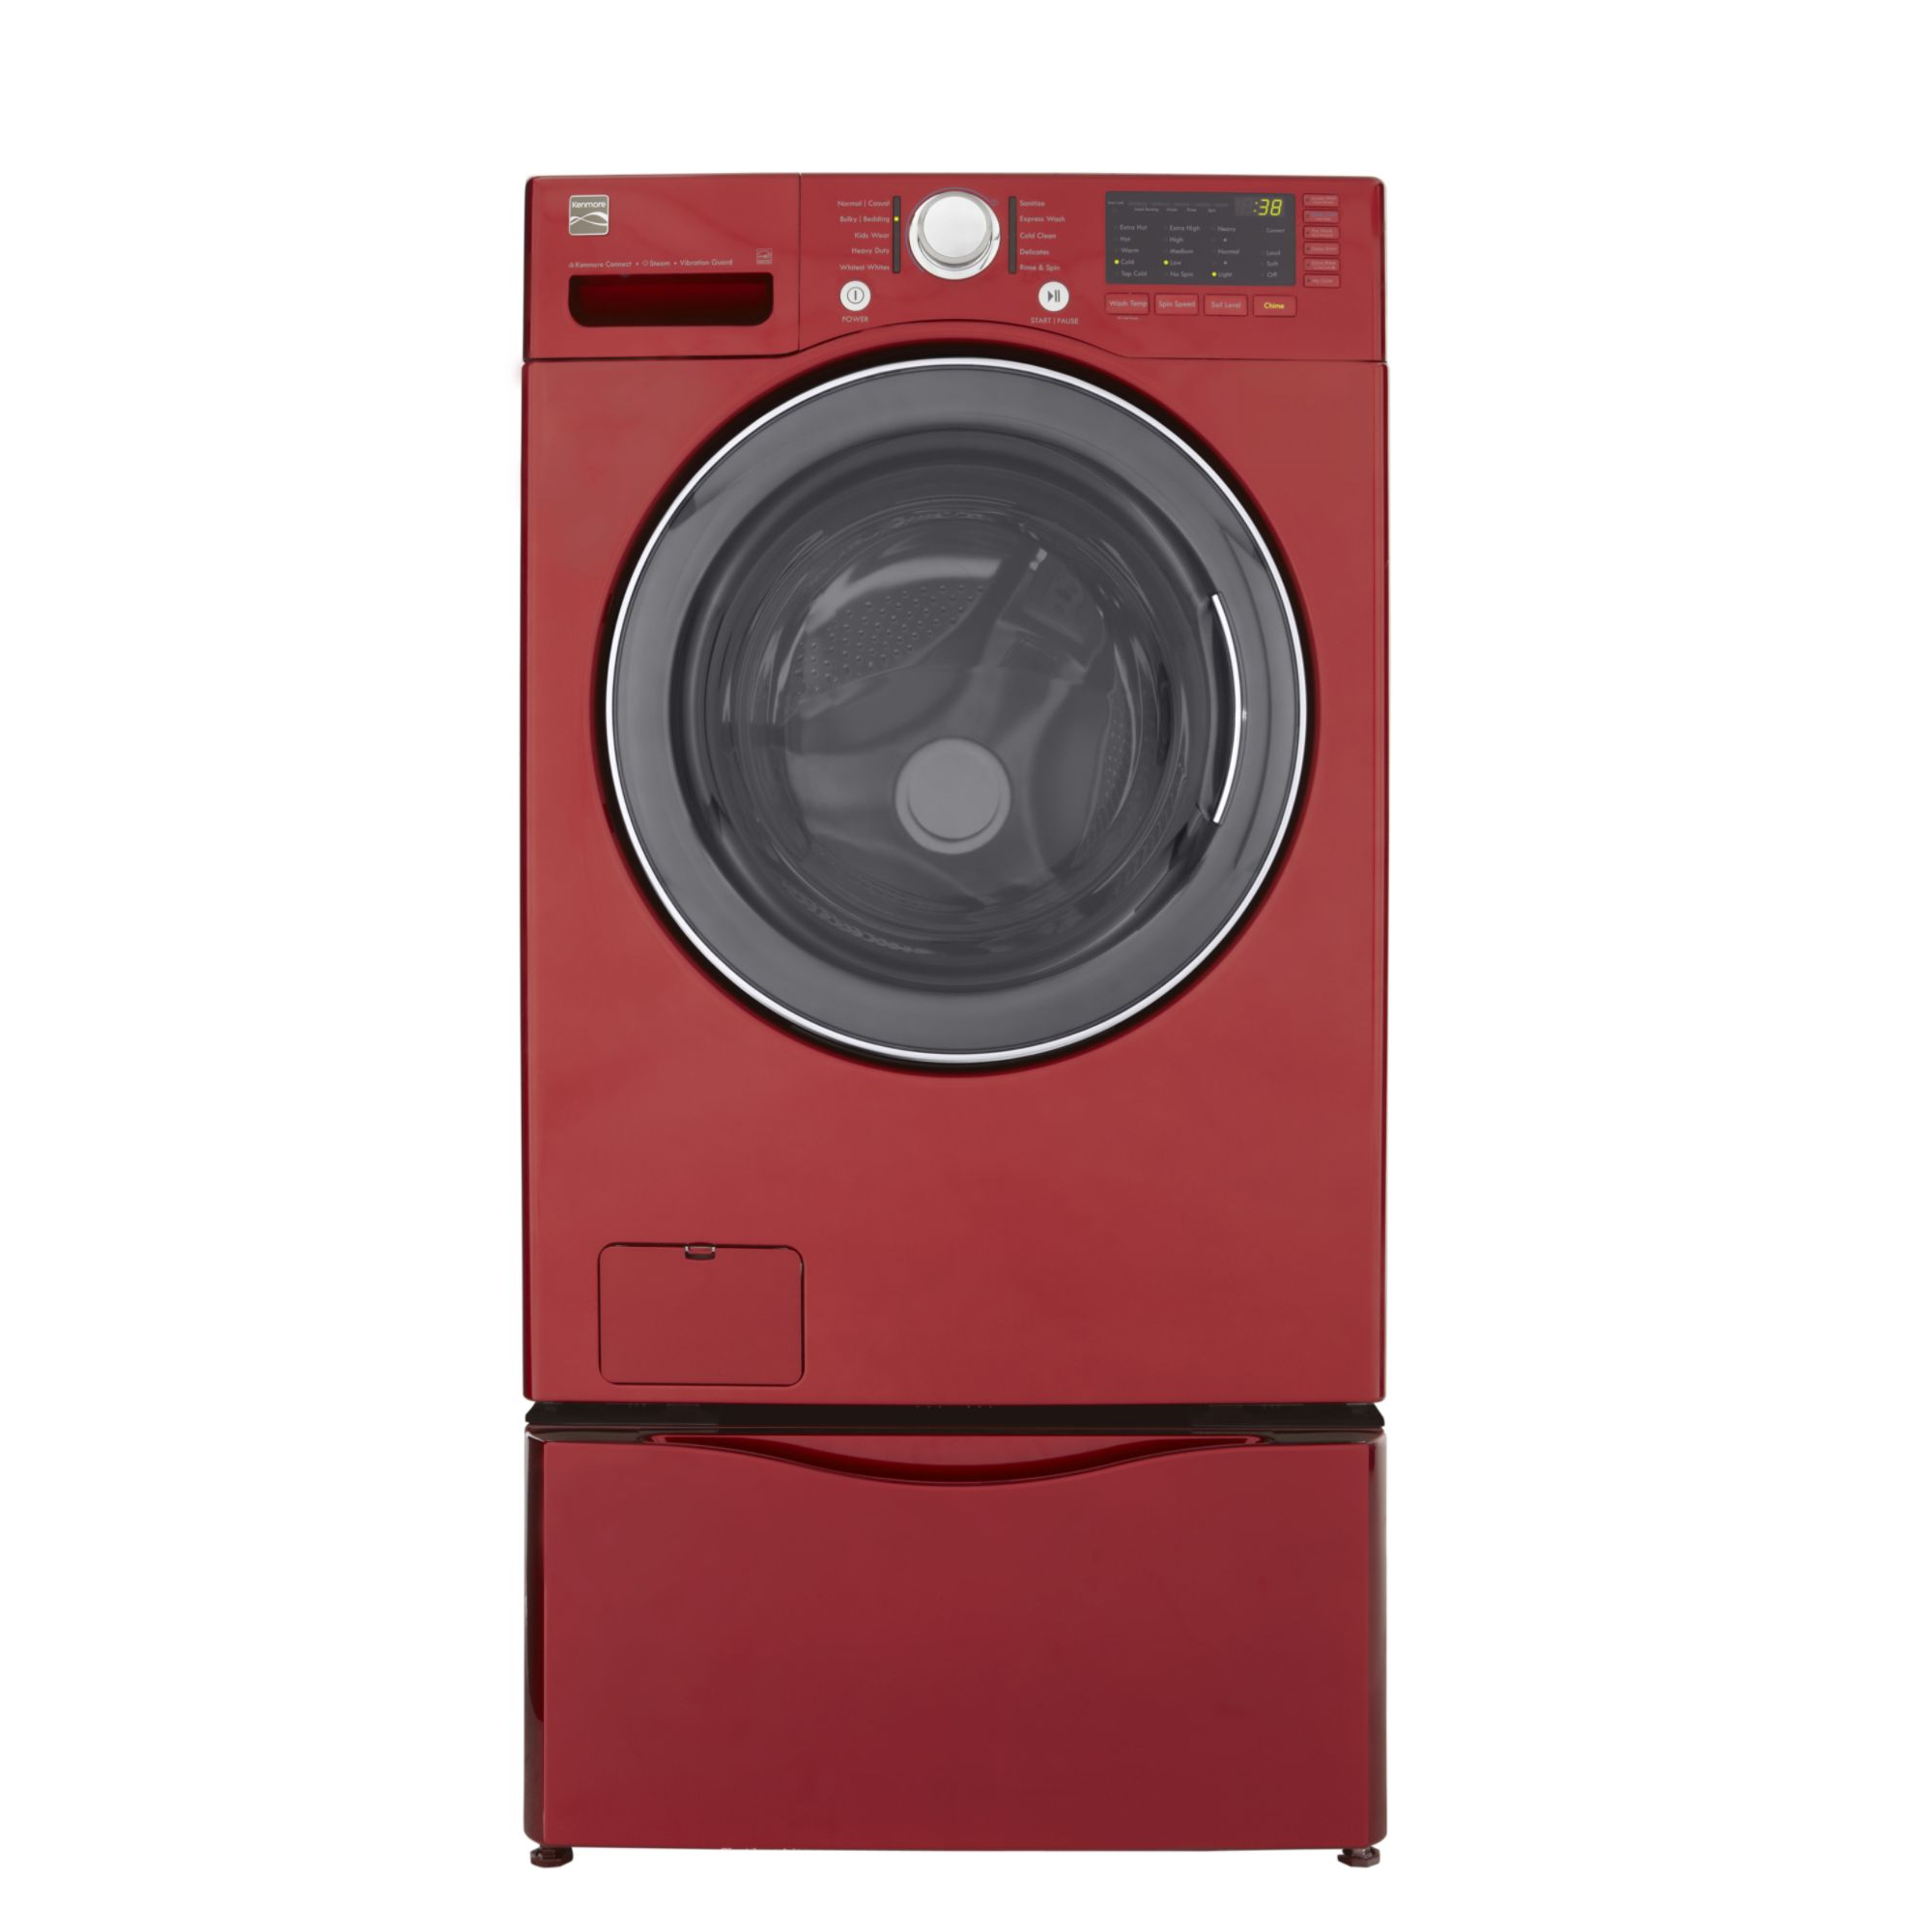 Kenmore 3.7 cu. ft. Steam Front-Load Washing Machine - Red